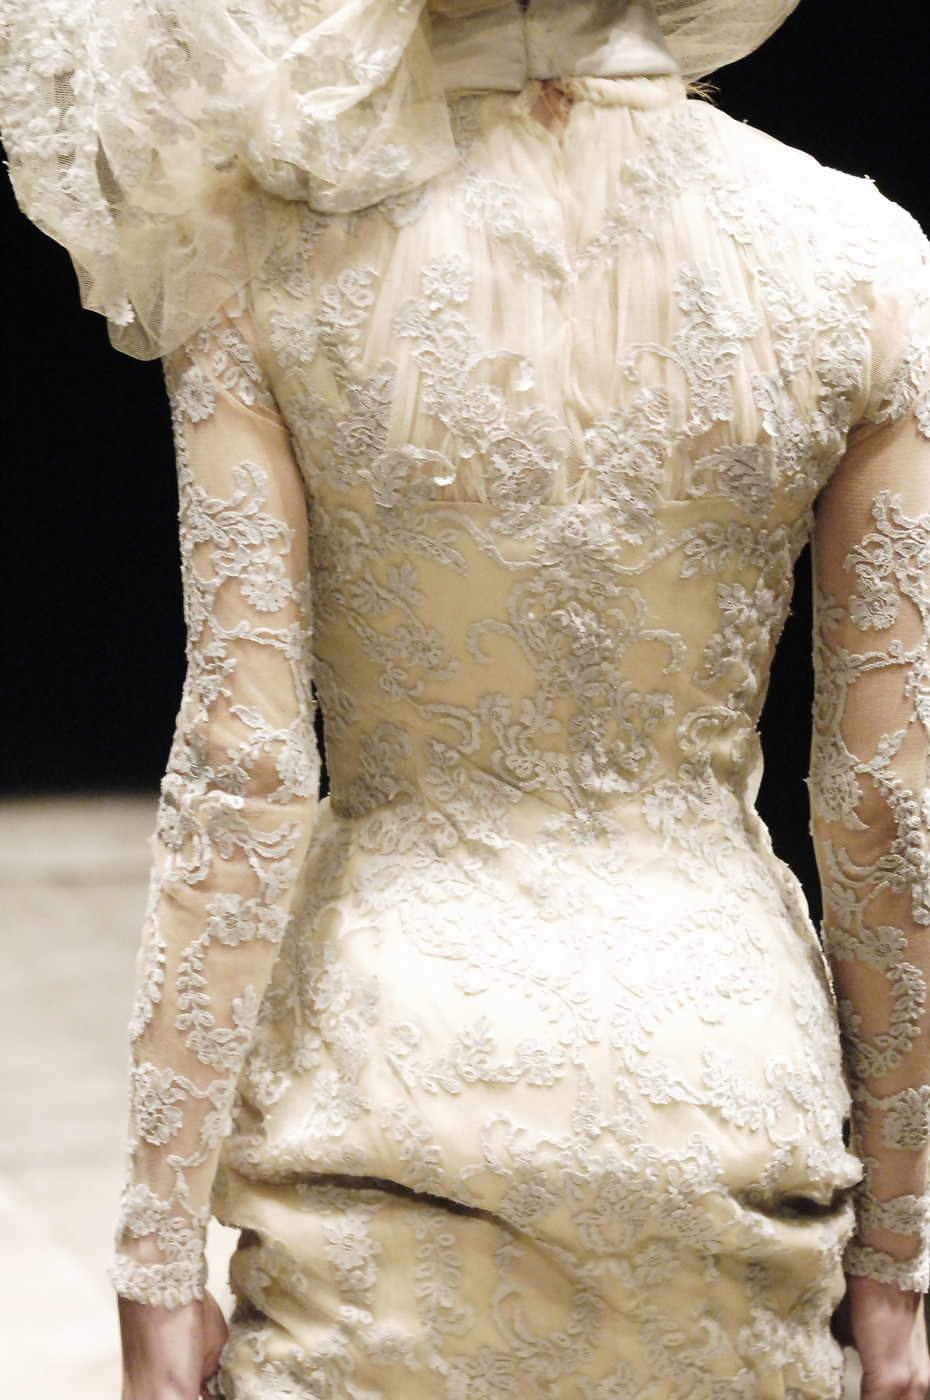 highqualityfashion:  Alexander McQueen FW 06